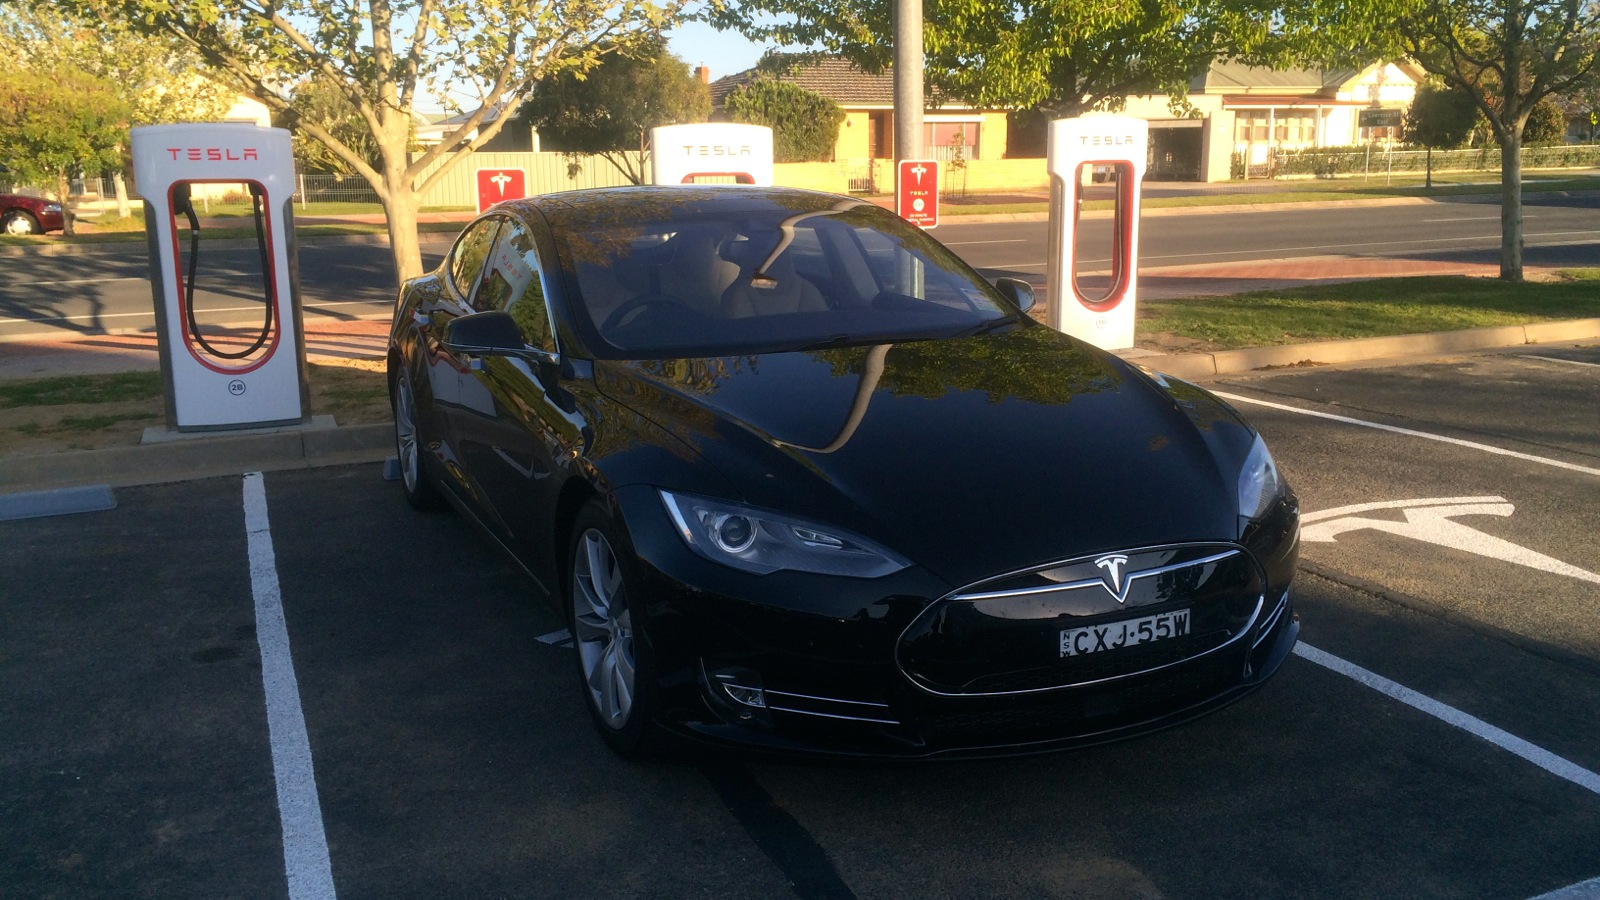 Awesome Tesla Model S Sydney To Melbourne Road Trip  Photos 1 Of 54